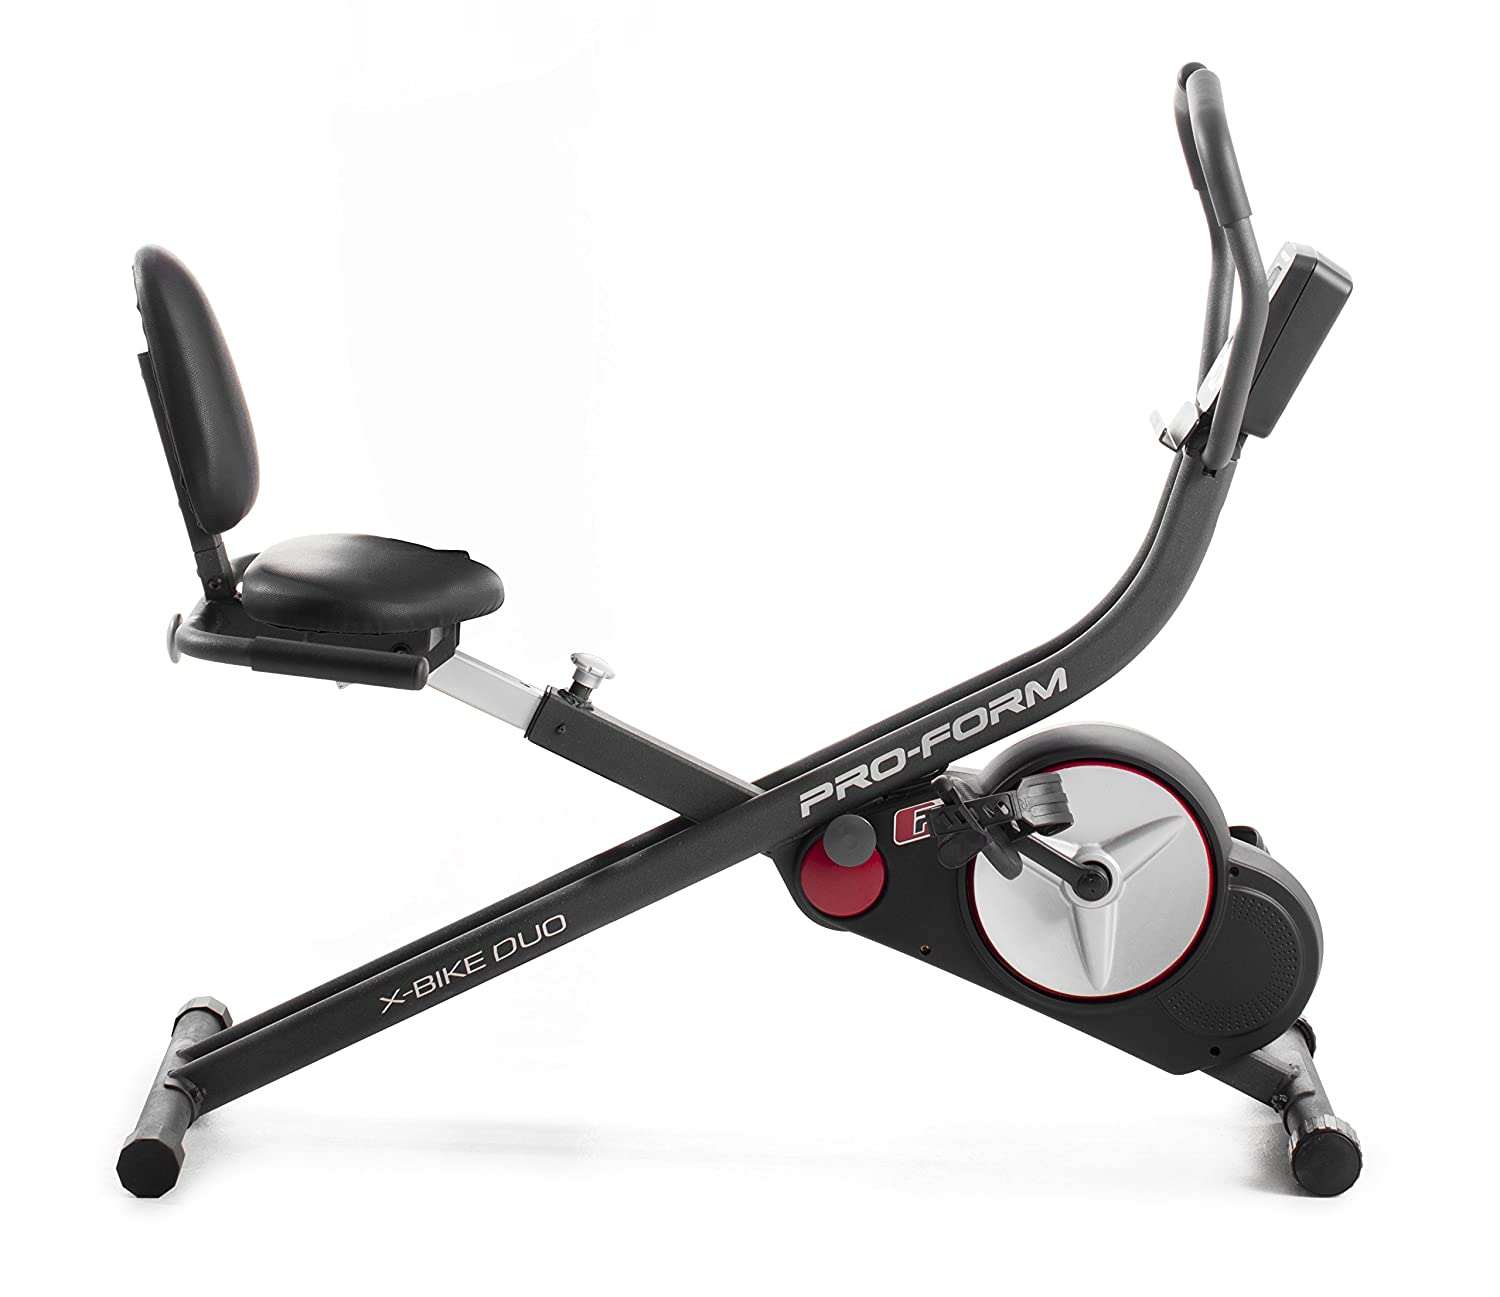 ProForm Recumbent  Bike Heimtrainer-  X-Bike Duo  2 in 1 Sitz und Liege Heimtrainern 14Workouts und 14 Widerstands-Level , LCD-Display -PFEVEX71917